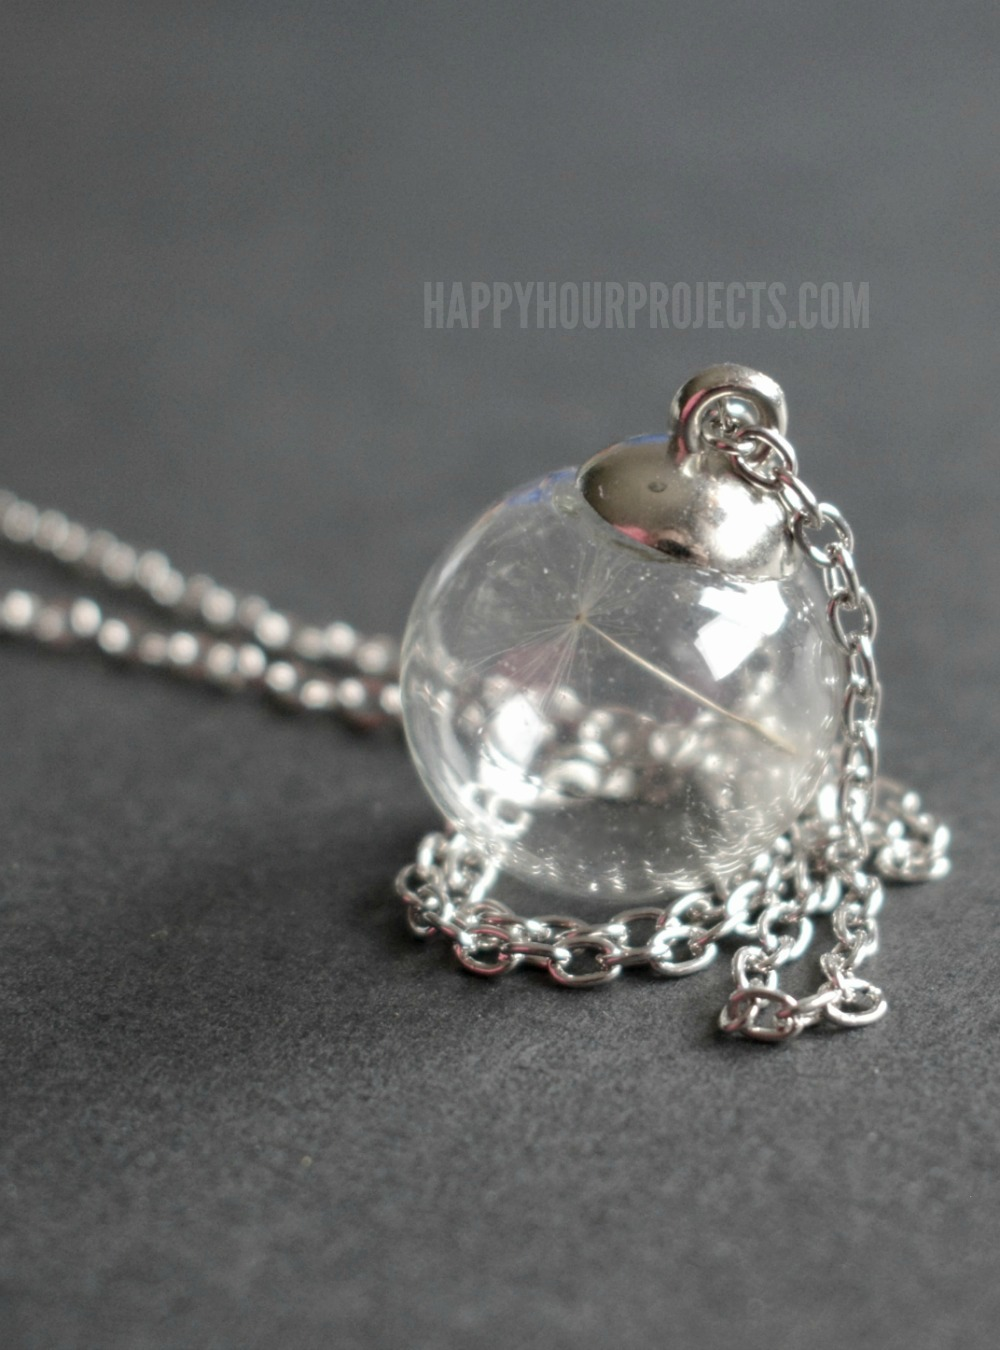 DIY Dandelion Seed Necklace | An easy-to-make jewelry gift or keepsake at happyhourprojects.com. Only takes about 10 minutes!